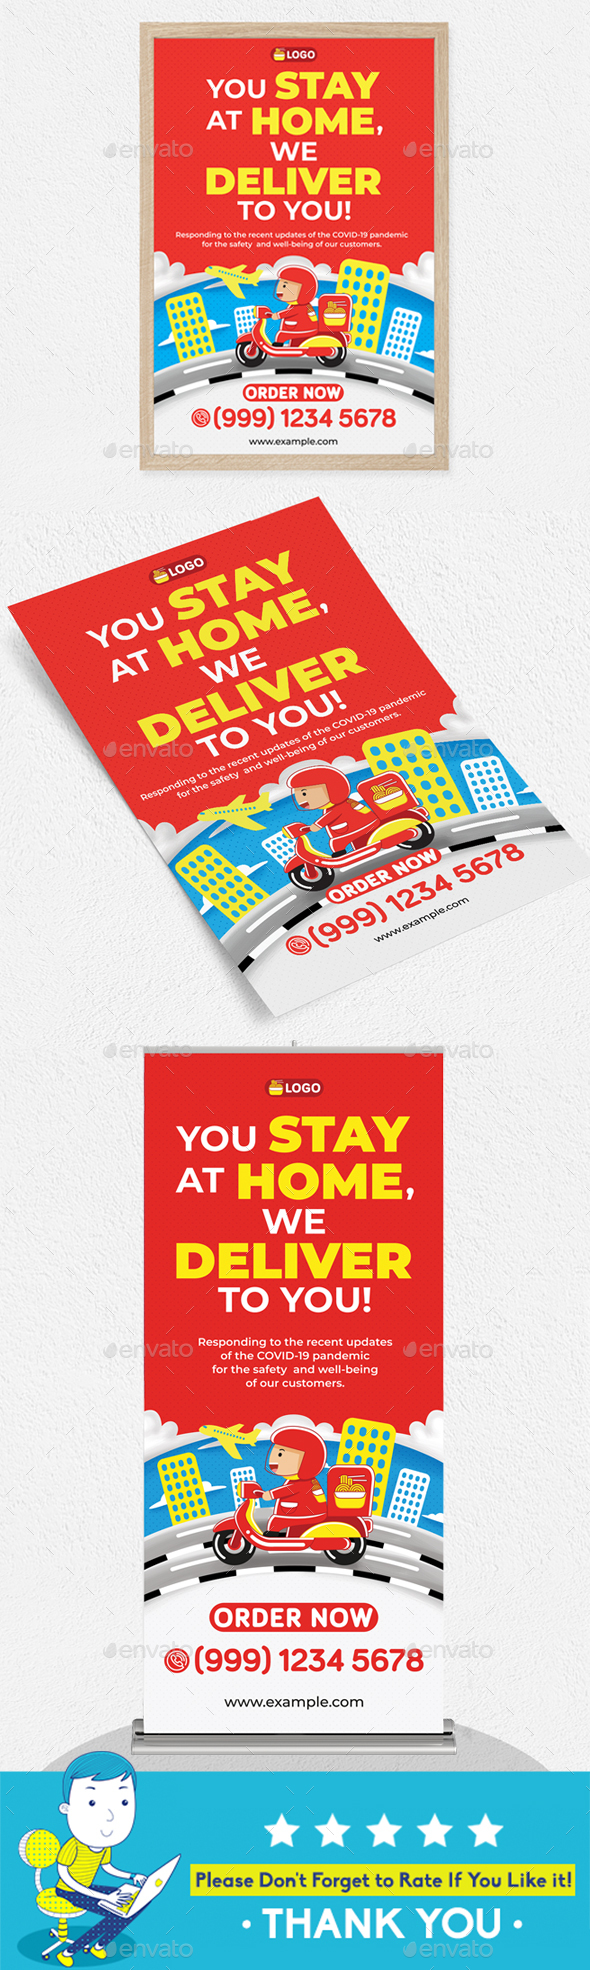 Food Delivery Templates